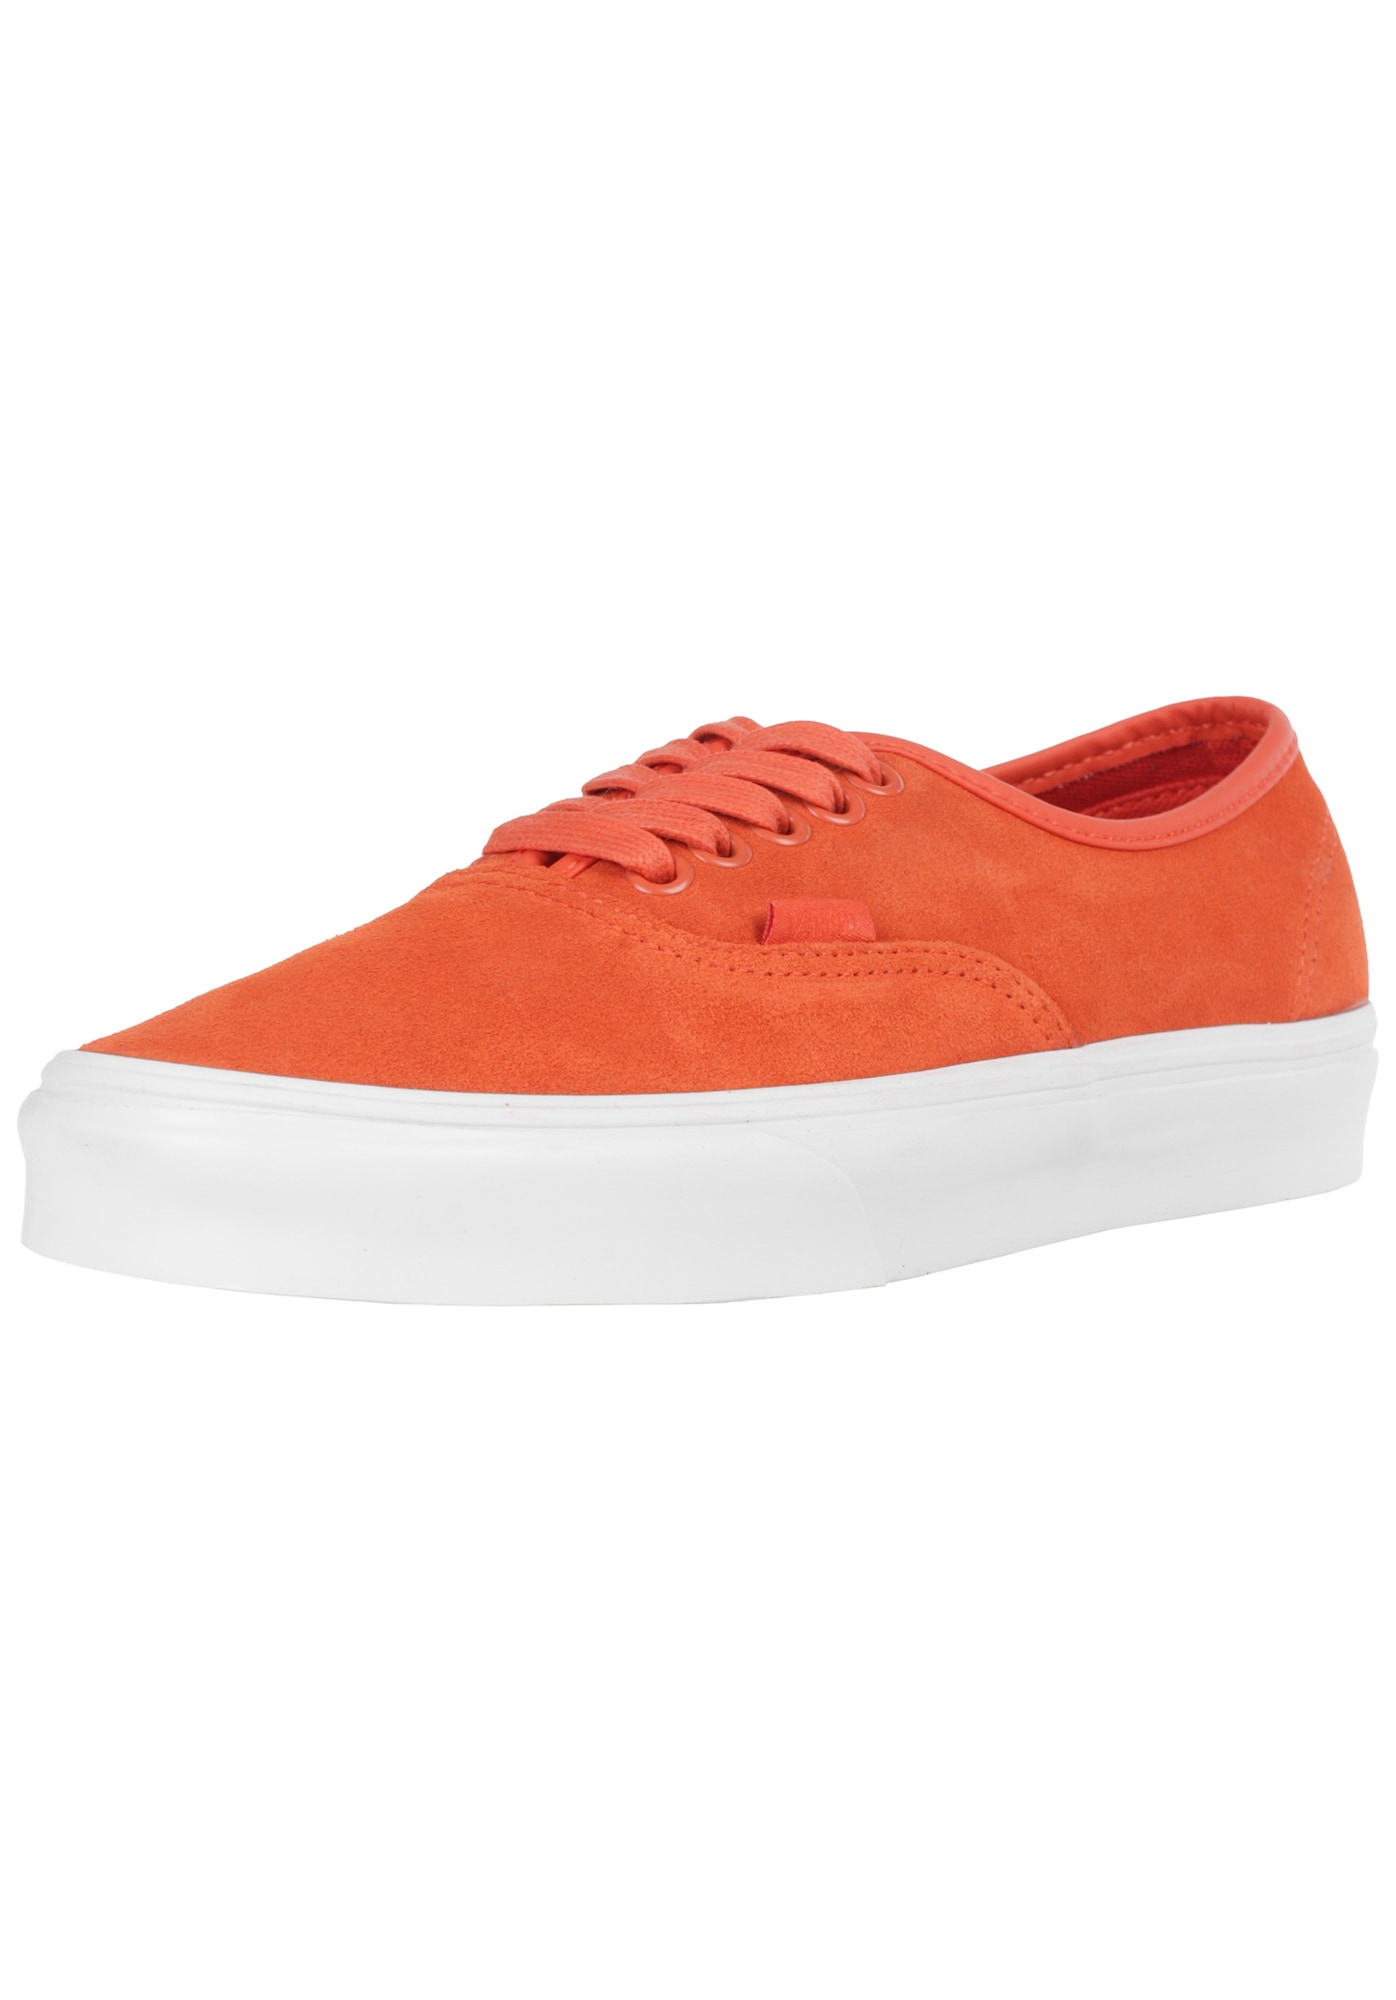 VANS, Heren Sneakers laag 'Authentic', oranjerood